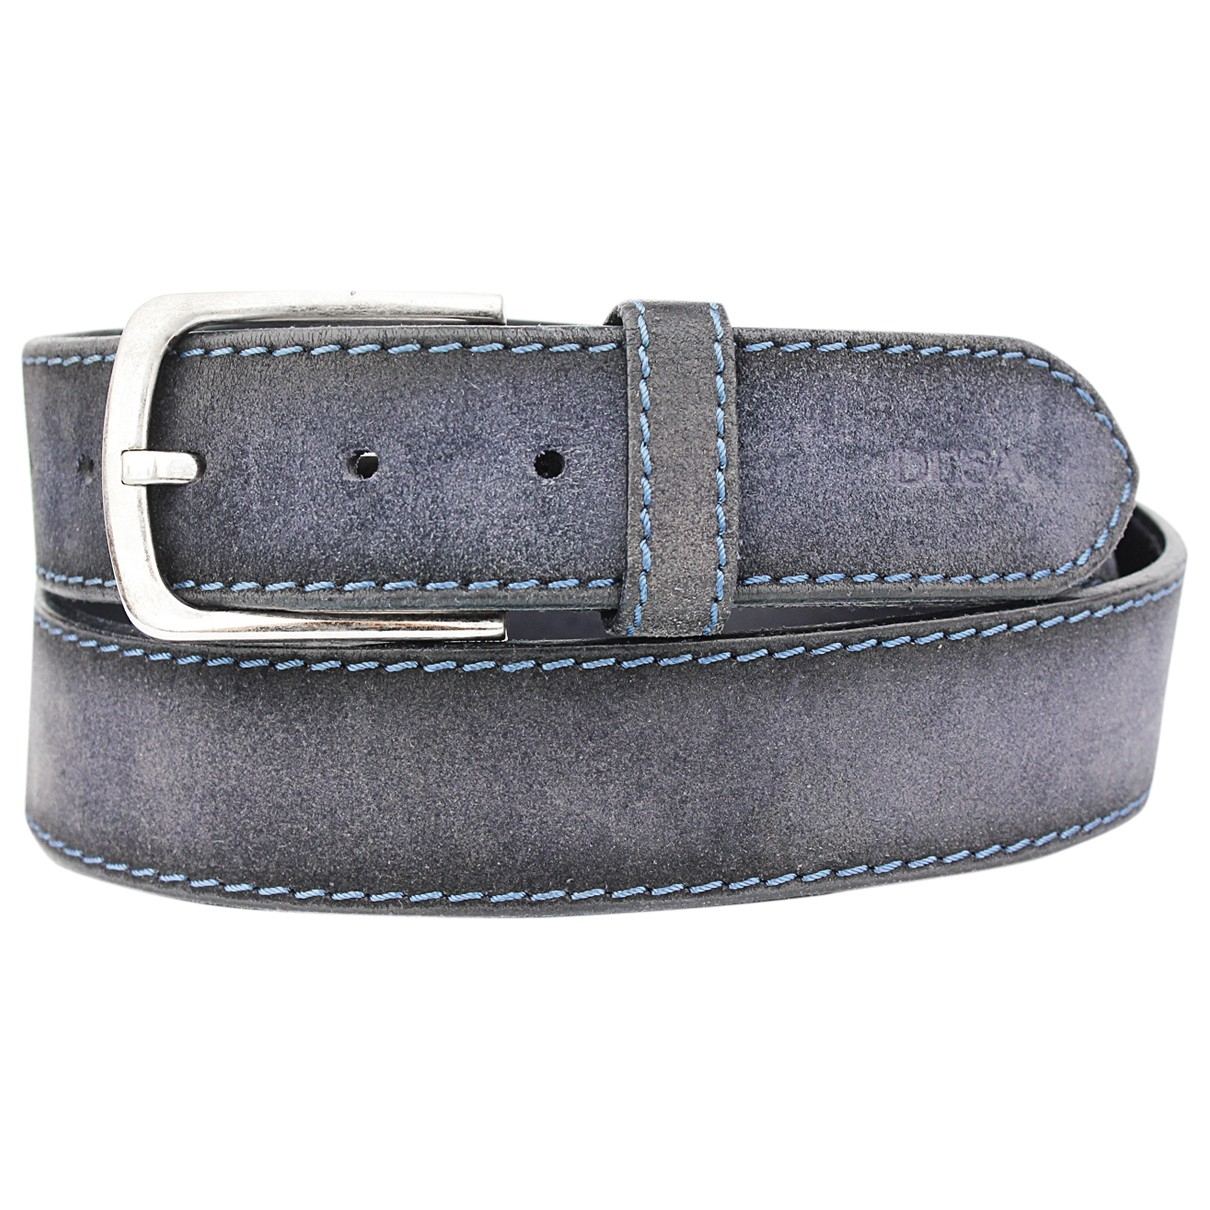 Desa \N Blue Suede belt for Men M international